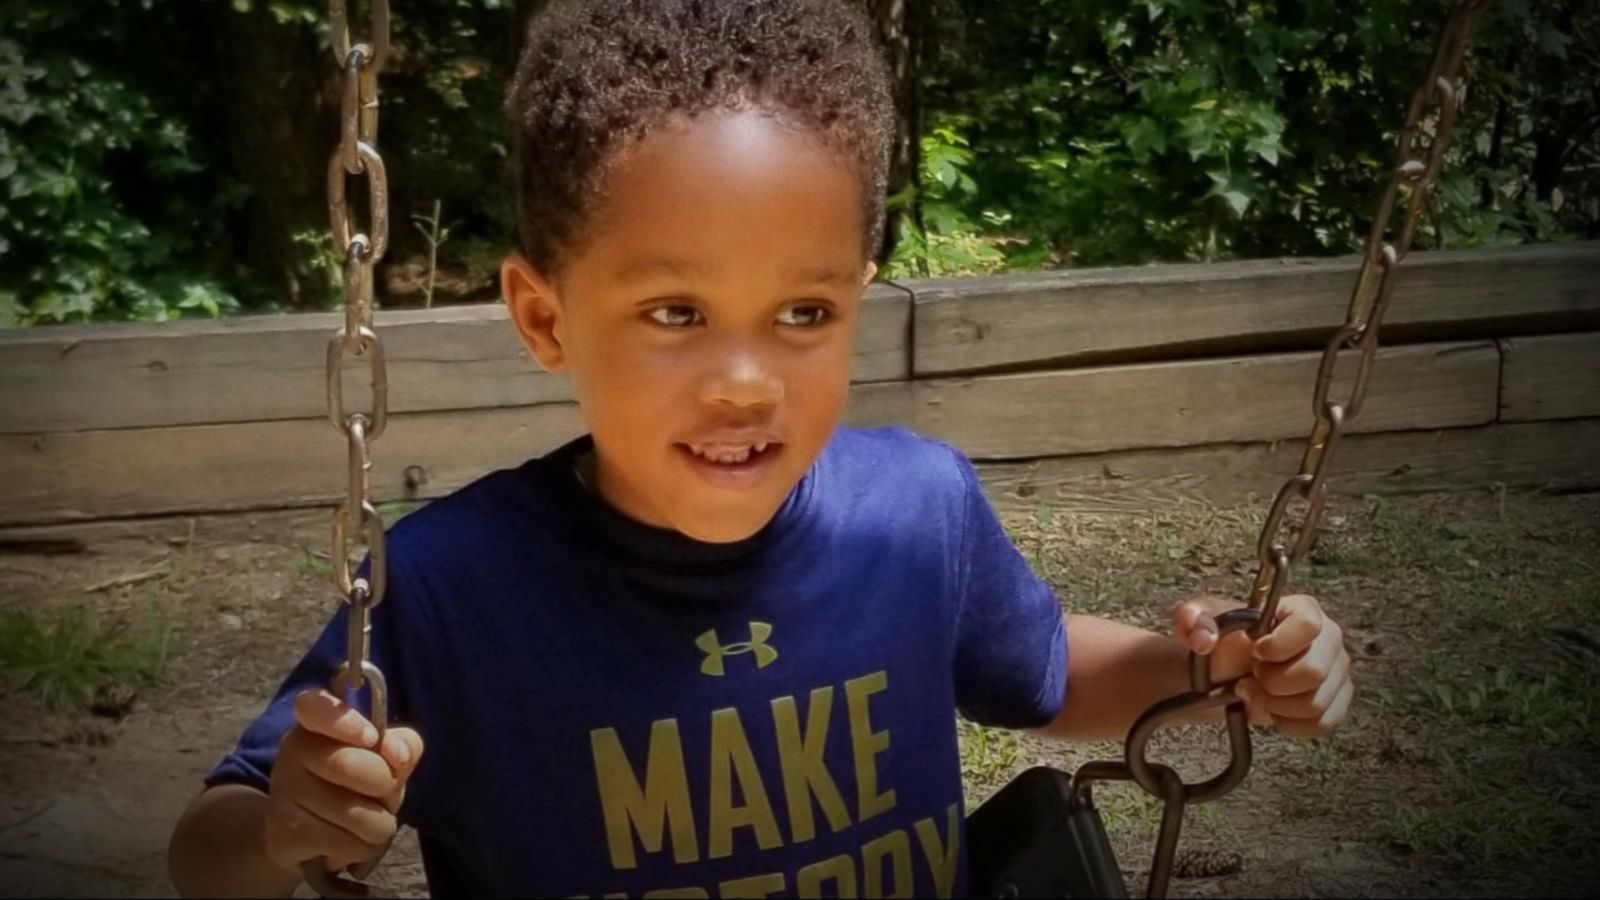 Family of 5-year-old who drowned at summer day camp planning to file